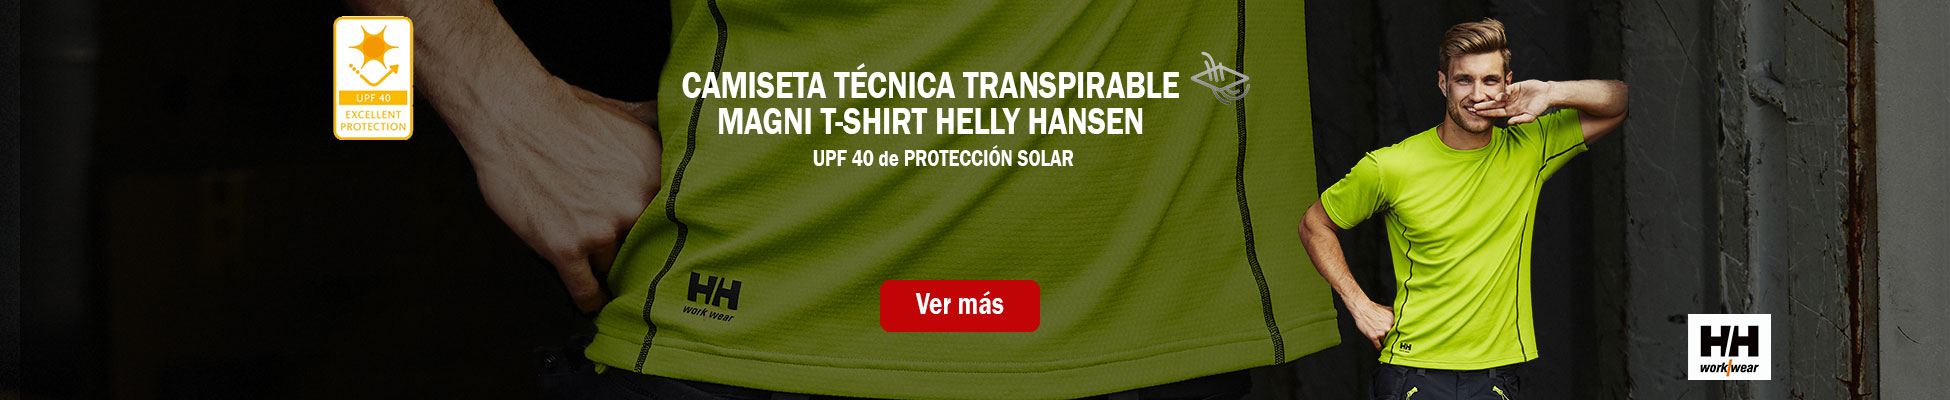 CAMISETA TÉCNICA TRANSPIRABLE MAGNI T-SHIRT HELLY